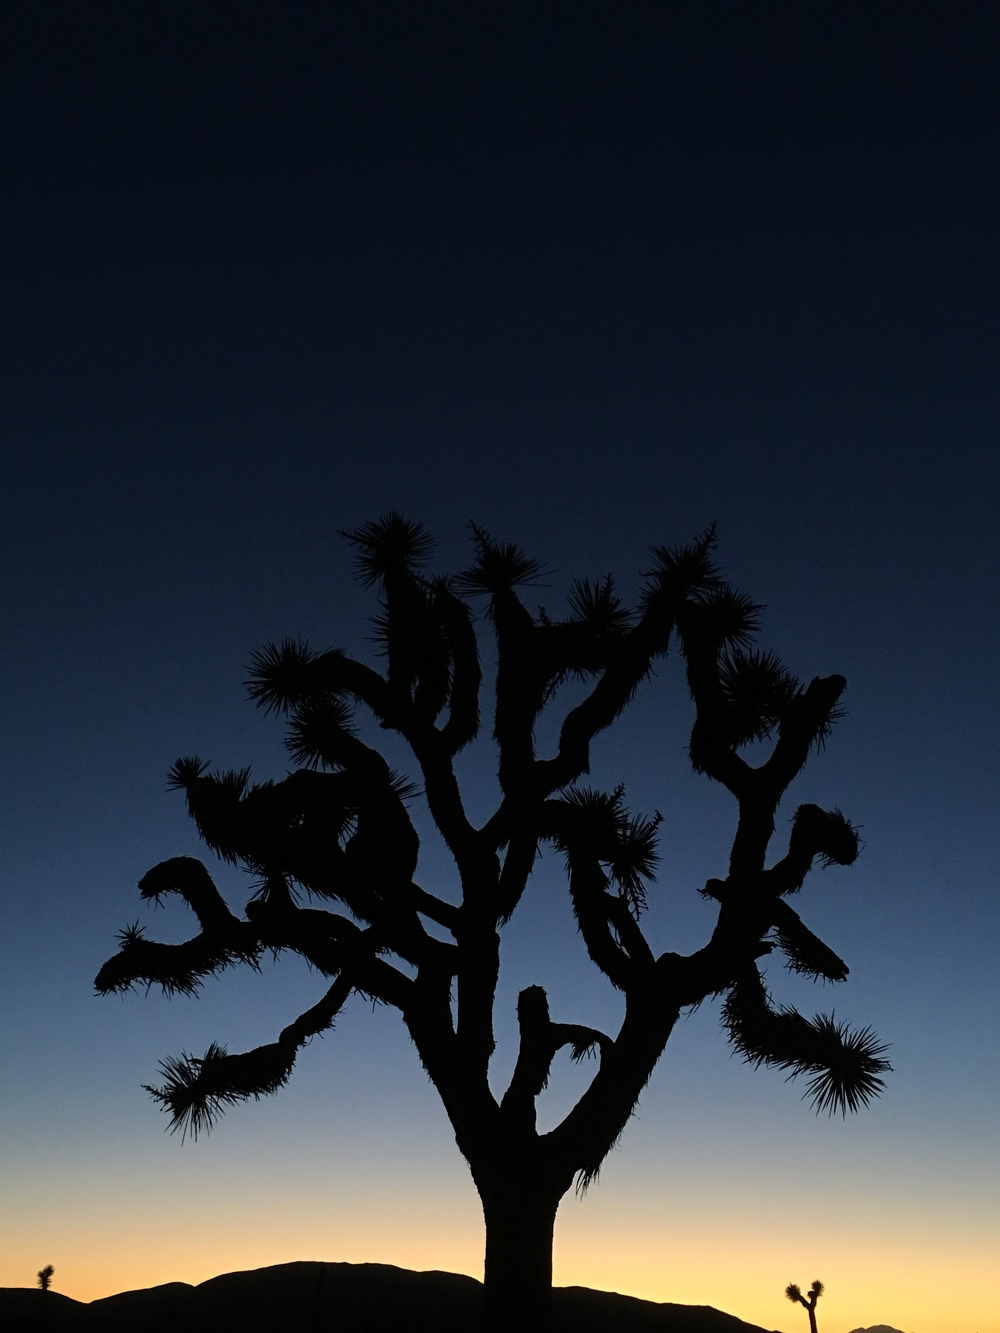 A Joshua Tree as the evening falls to night in Joshua Tree National Park, California.